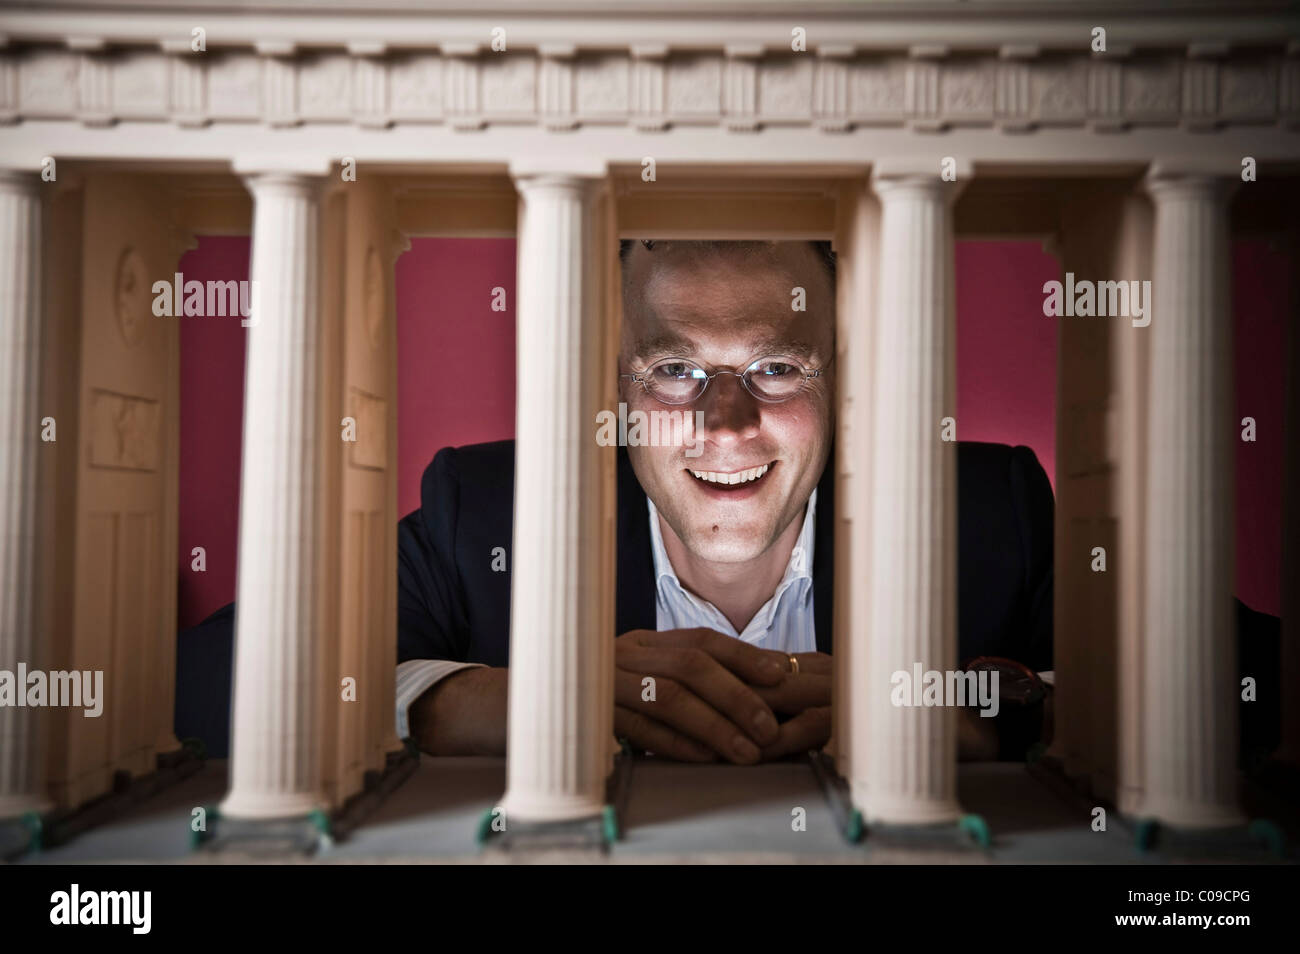 Karl Matthaeus Schmidt, CEO Quirin Bank AG, Berlin, Germany, Europe - Stock Image